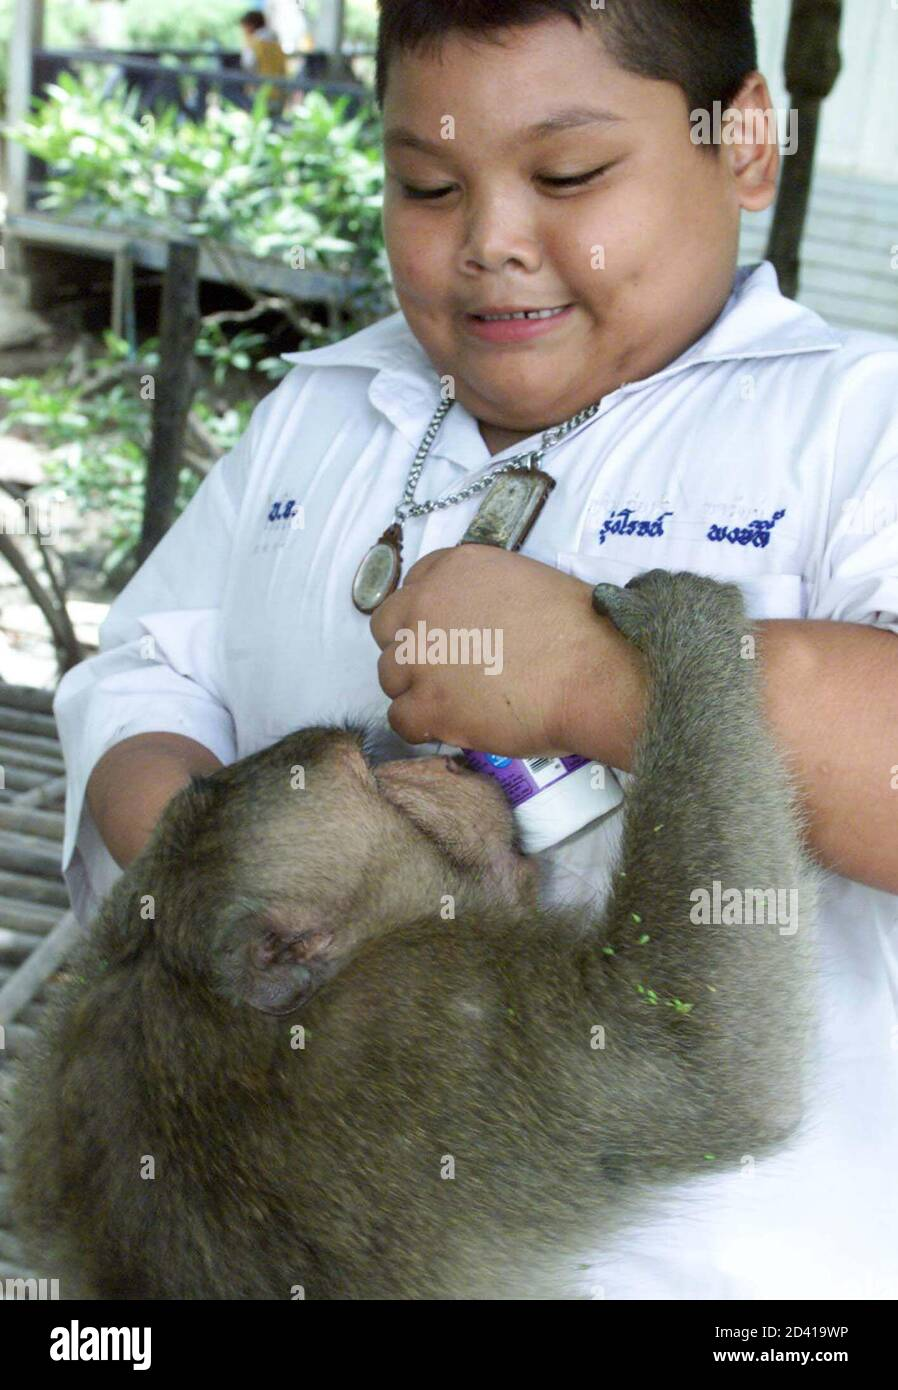 A stray monkey tries to steal a bottle of yoghurt from a student during lunchtime at a school in Samul Songkram province, 80 km southwest of Bangkok May 29, 2001.  About 100 pupils at Ban Chu Chee Primary School have been robbed of food by over 150 monkeys, whose mangrove habitat has constantly been encroached by human beings for over a year. Stock Photo